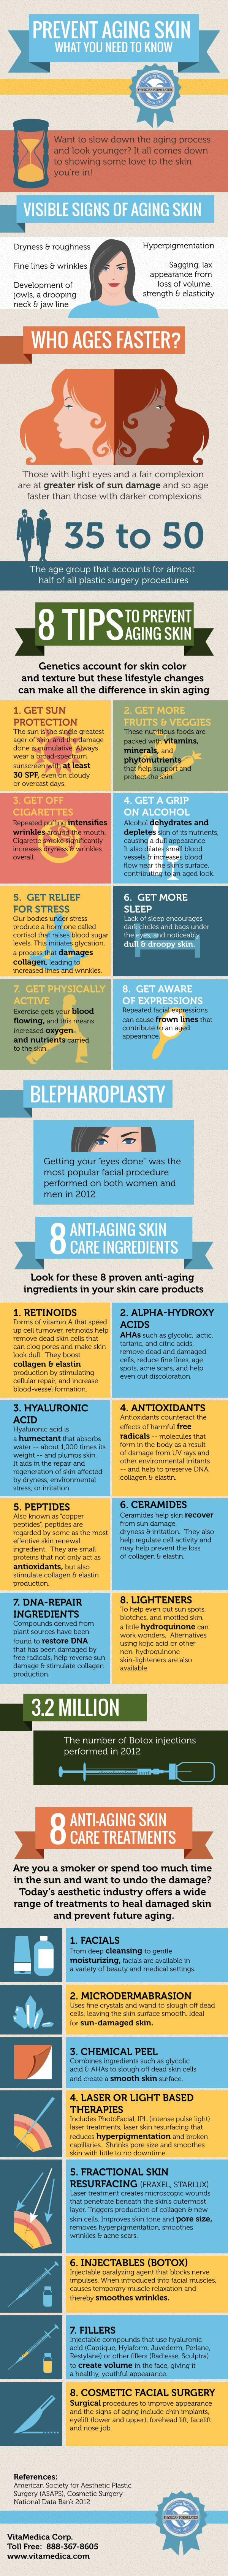 Prevent Aging Skin - What You Need to Know (INFOGRAPHIC)